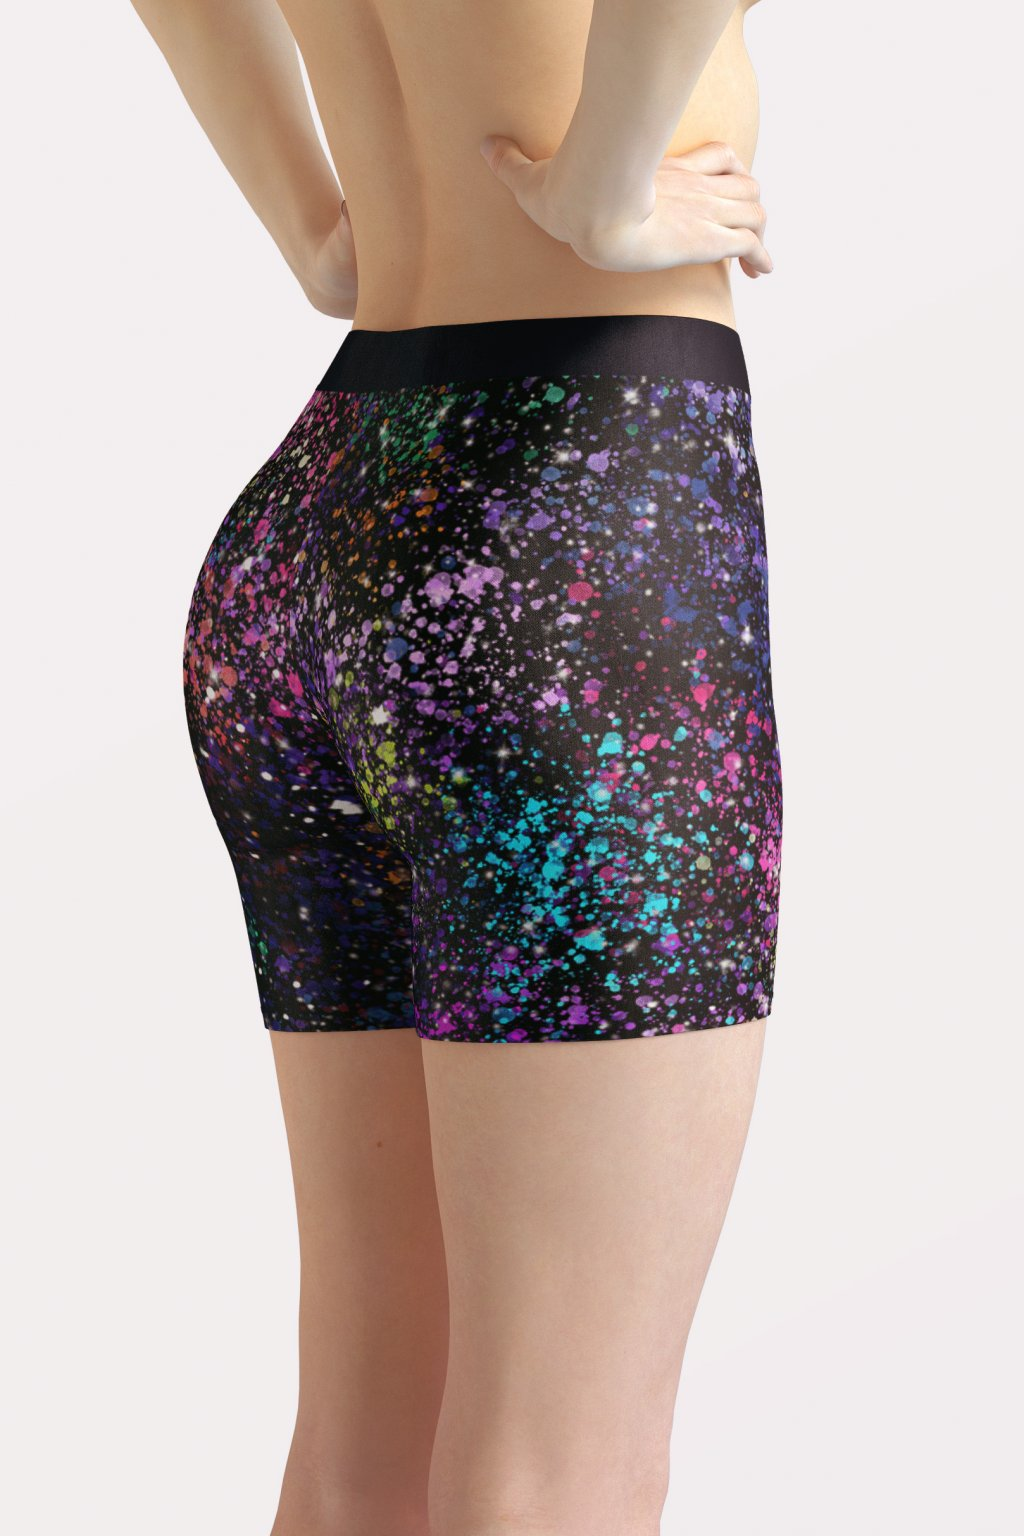 galaxy shorts back side by utopy